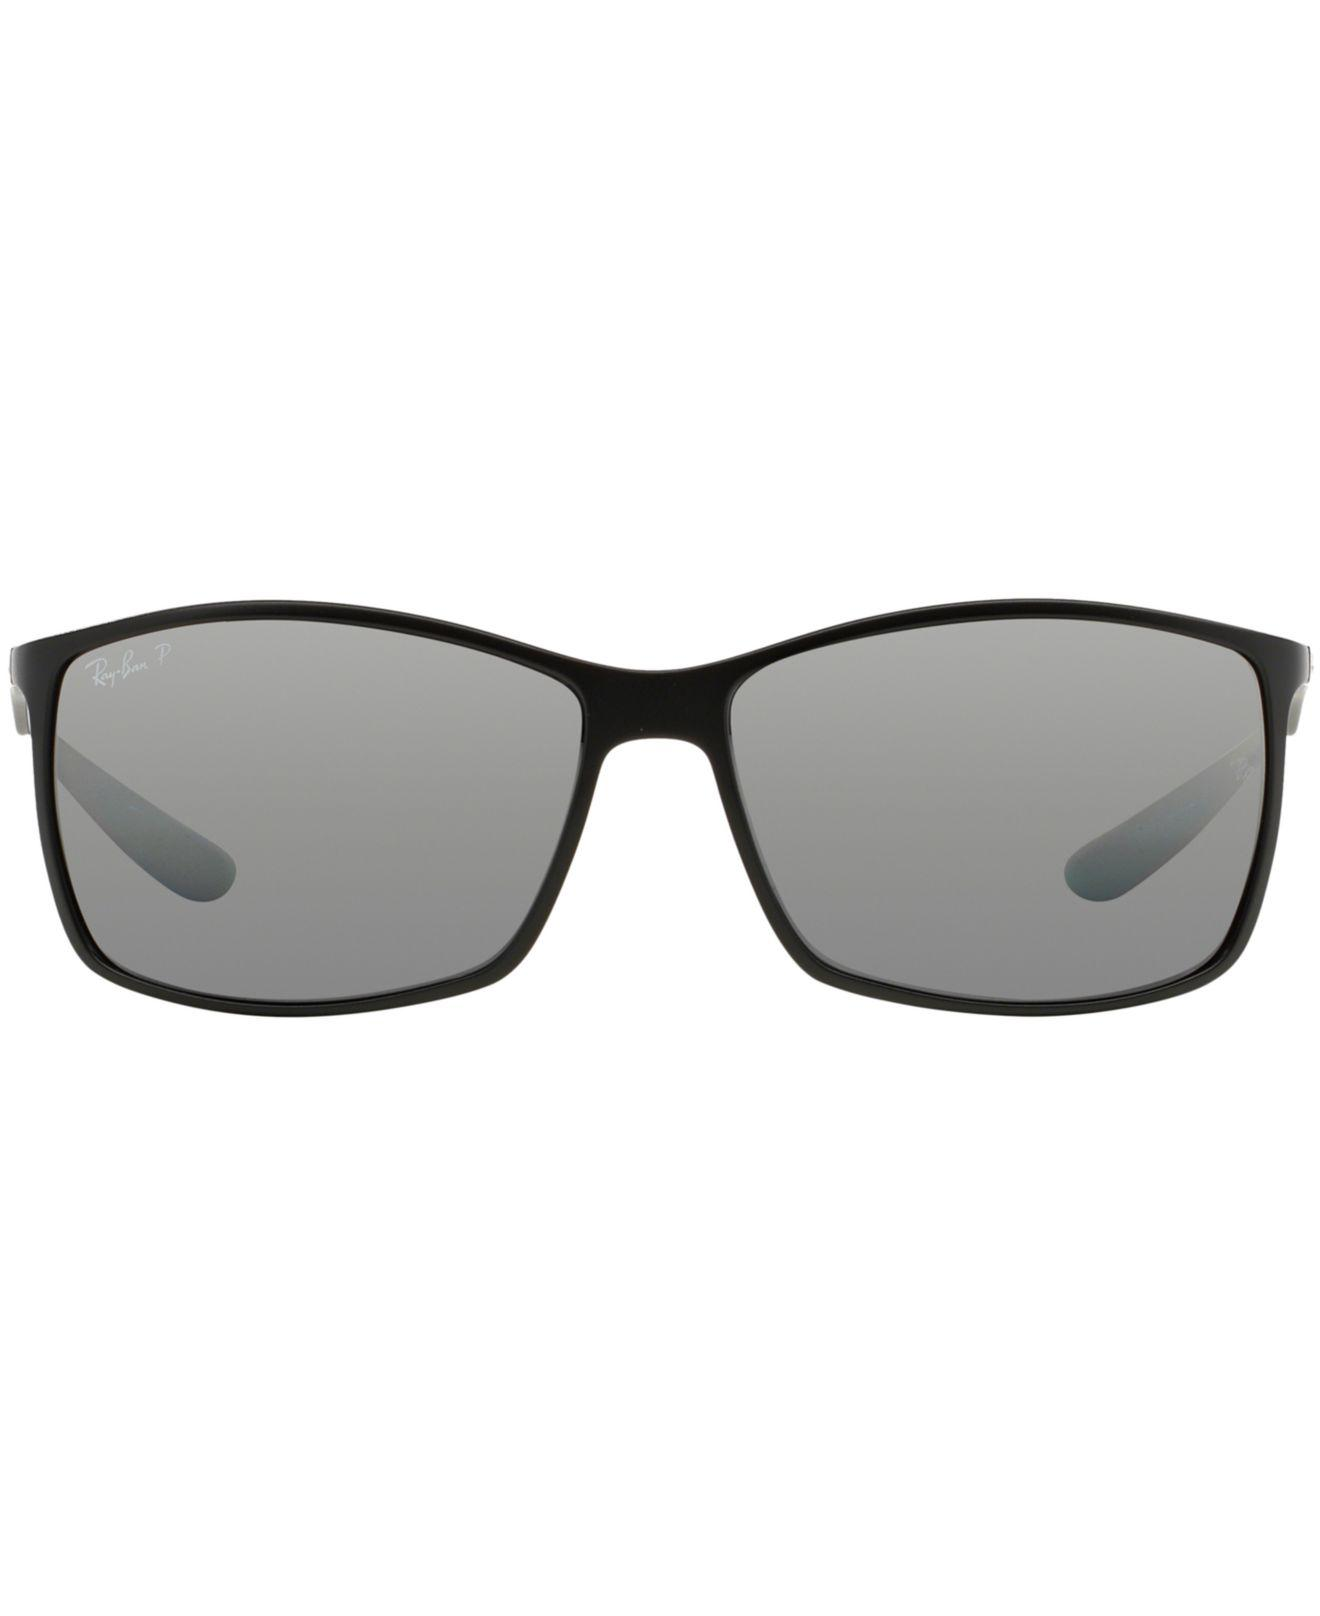 b1bd1bf669416 ... shop lyst ray ban sunglasses rb4179 62 liteforce in black for men cd7a9  7270e